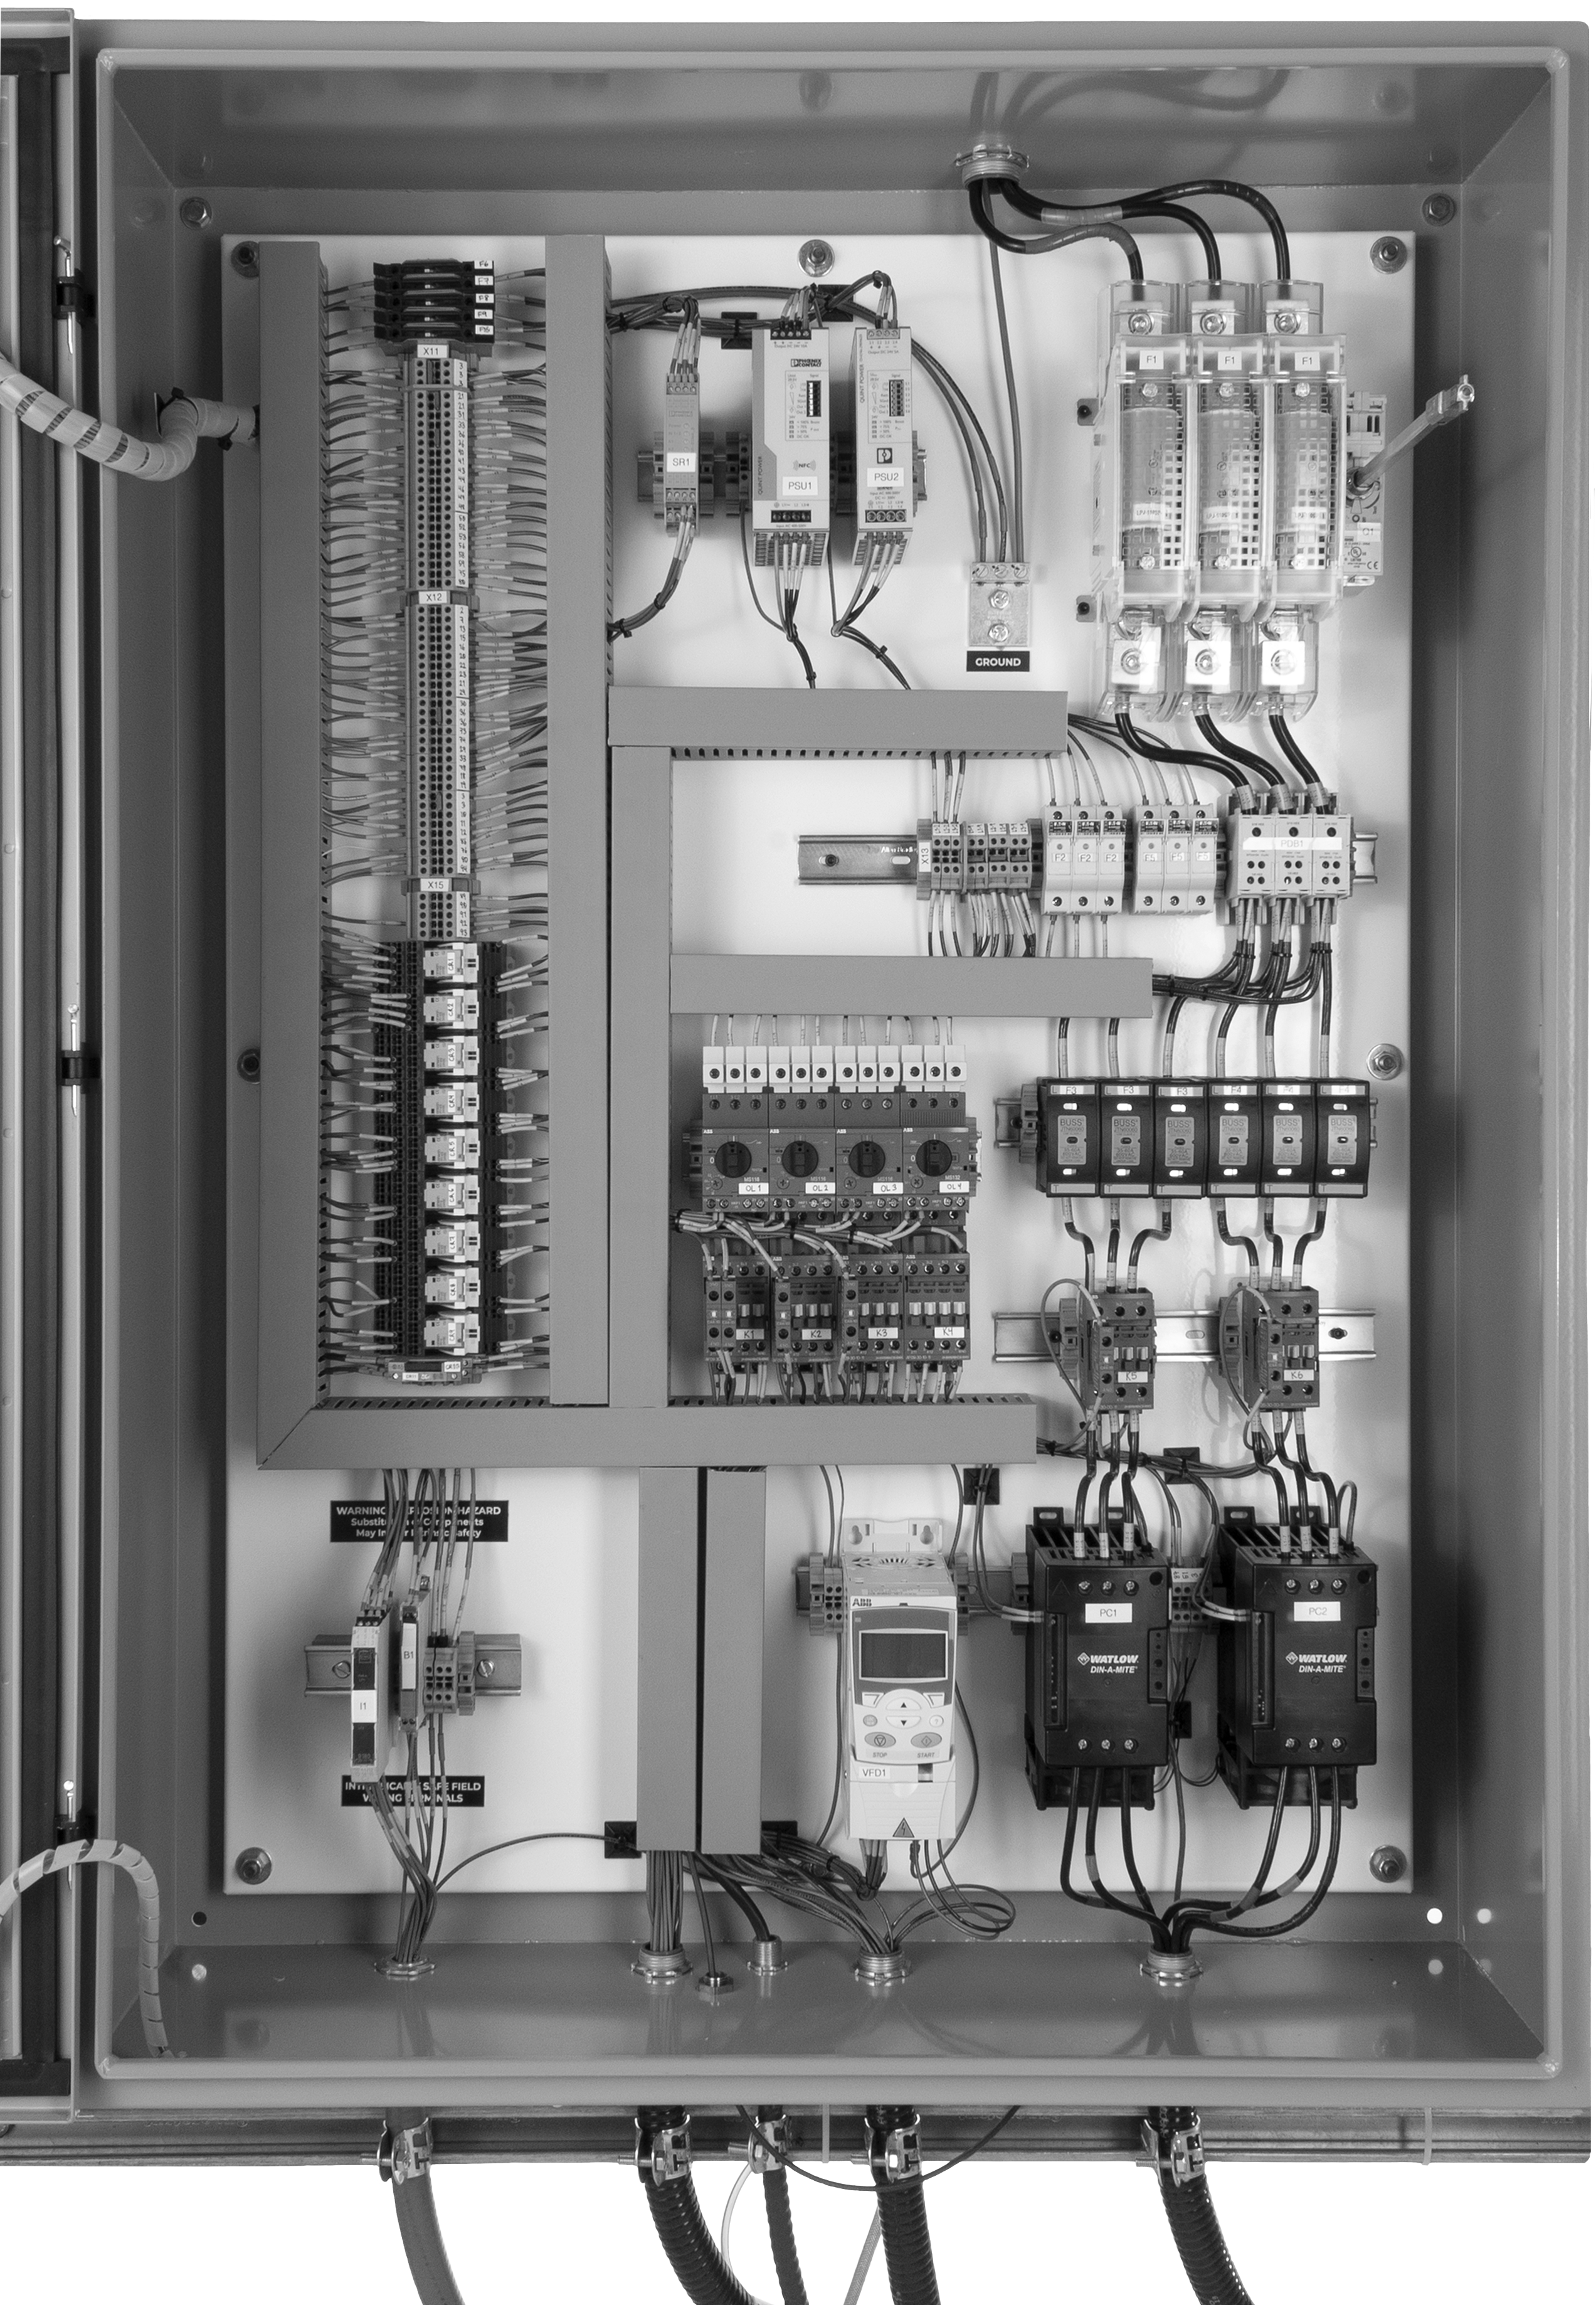 Internal view of a control panel showing the components and wiring